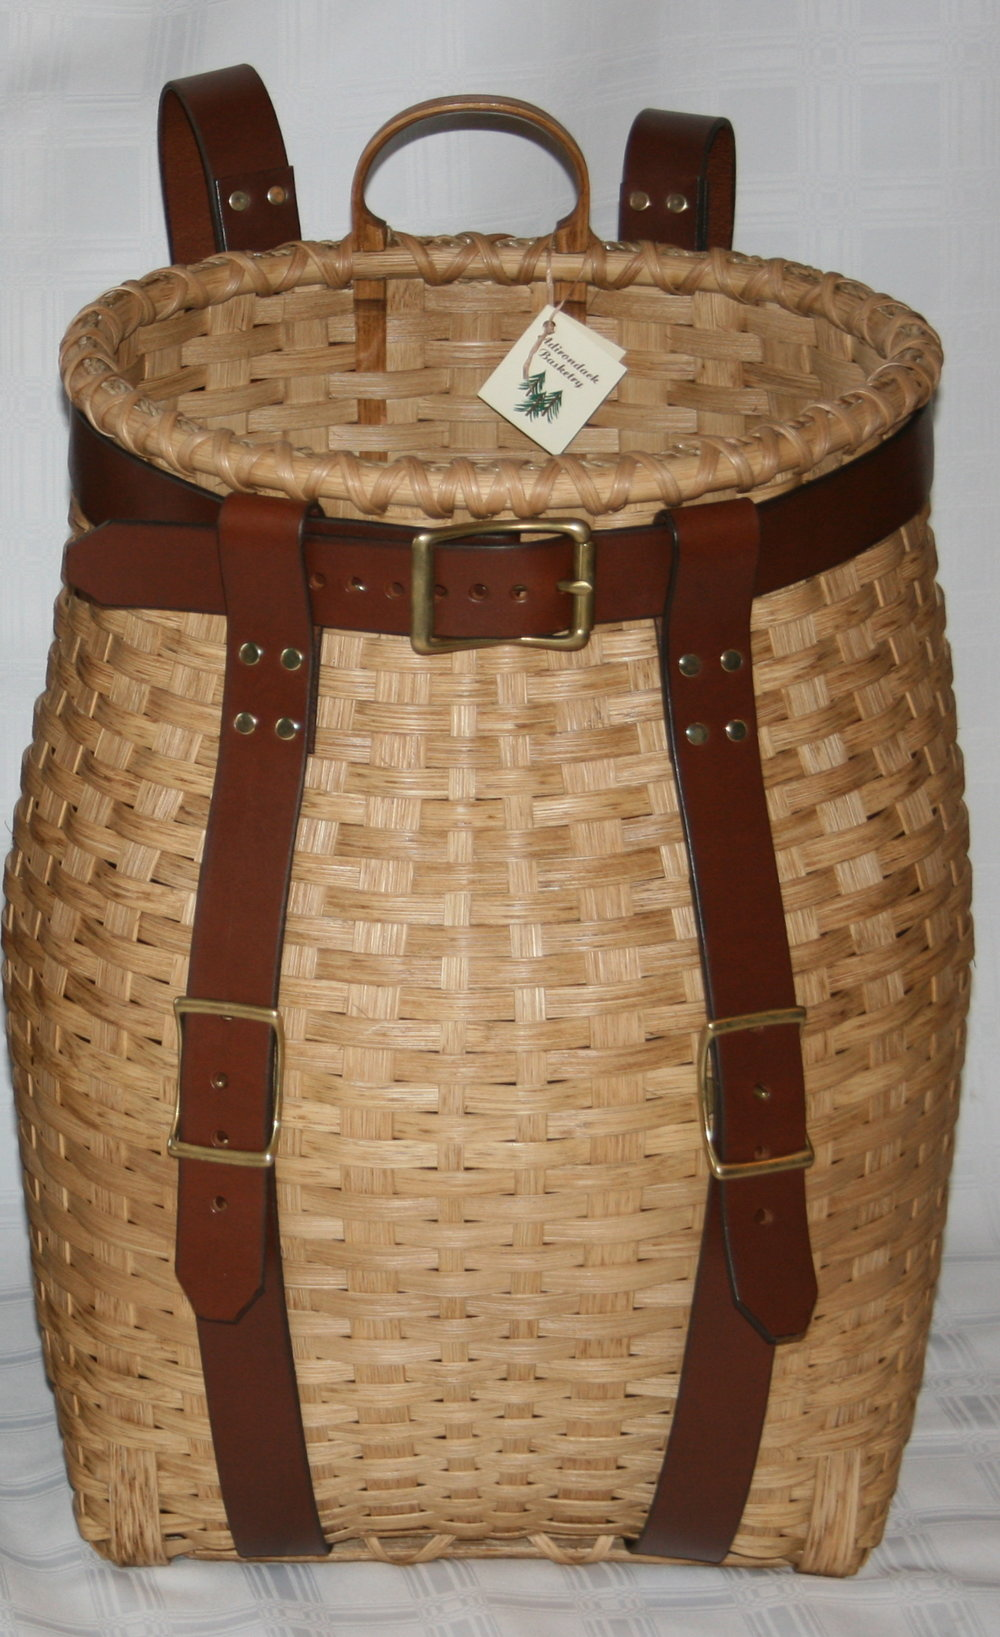 July 13-15, 2018 Large Mountaineer Pack Basket - One of the most recognized objects associated with the Adirondacks.  These versatile baskets were used to carry just about everything the guides, hunters, and trappers took with them into the woods.  Create your very own in this 2-day workshop with renowned basket maker Linda Scherz.  Harness choice (cotton or leather) needs to be made two weeks prior to class to allow for ordering and making. Once enrolled, Linda will contact you regarding the leather harness fee (cotton harness is included in the materials fee).  Baskets will not be stained during class.Our Weekend Package includes lodging, all meals, the 2 day workshop, and all basket materials and instruction.  Cost for the Weekend Package is $565 per person.Local participants can also register for the workshops only (Saturday 9 am - 5 pm and Sunday 9 am - 4 pm) for $200, which includes all basket materials, instruction, and lunch both Saturday and Sunday.Class size is limited, so register early!  Call our registrar at 315-354-5311  ext. 1021.